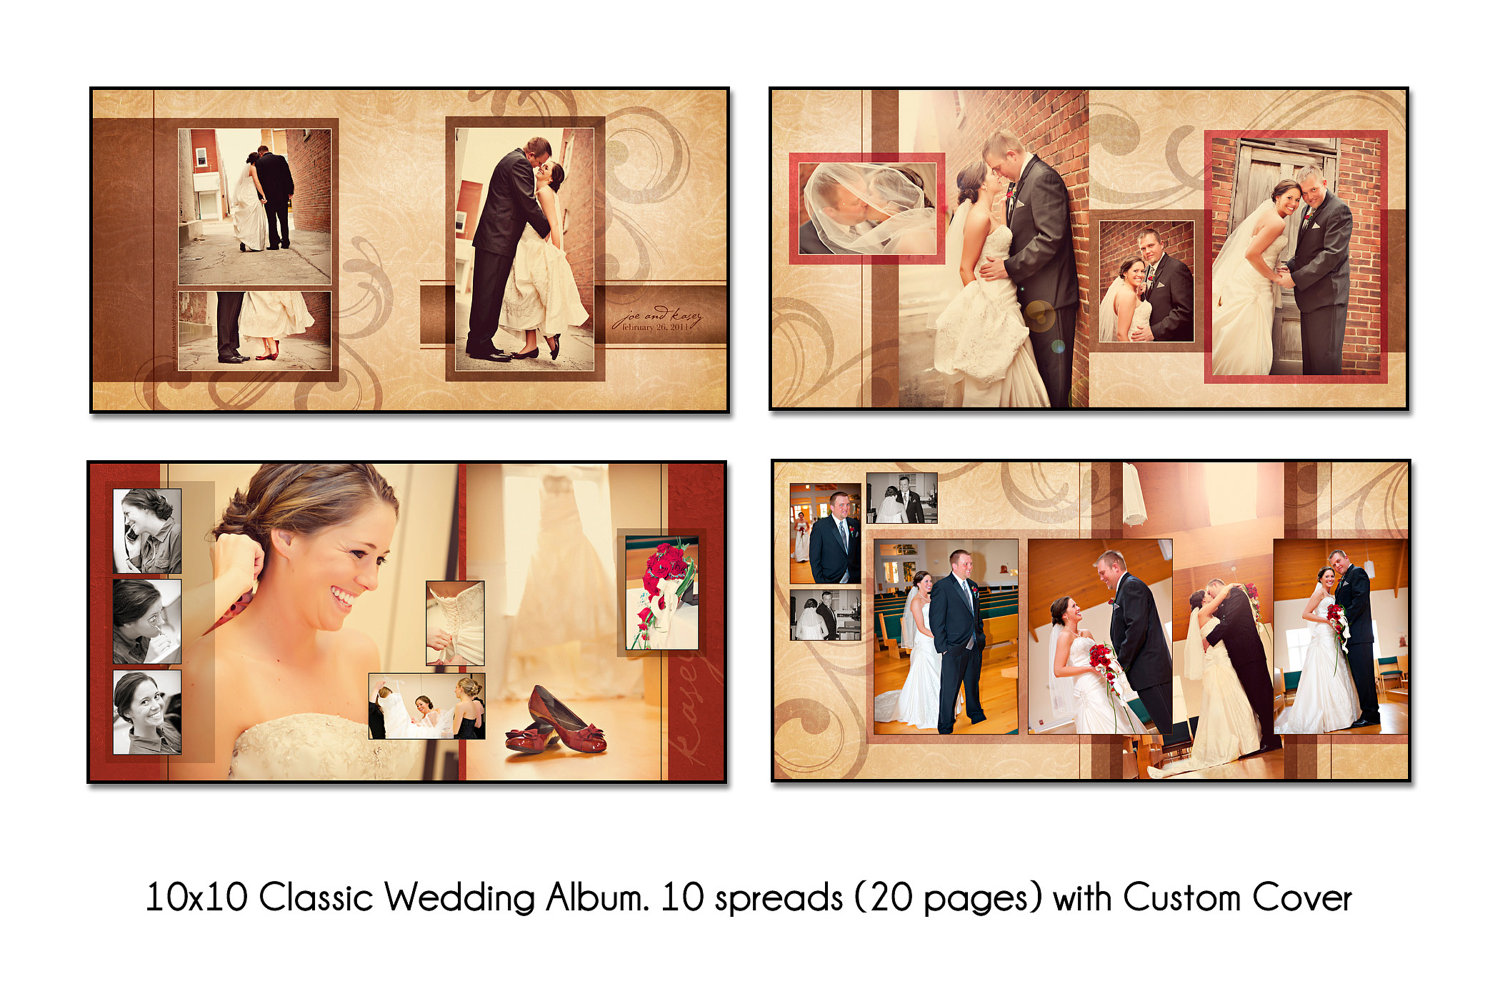 6 Free Wedding Album PSD Templates Images